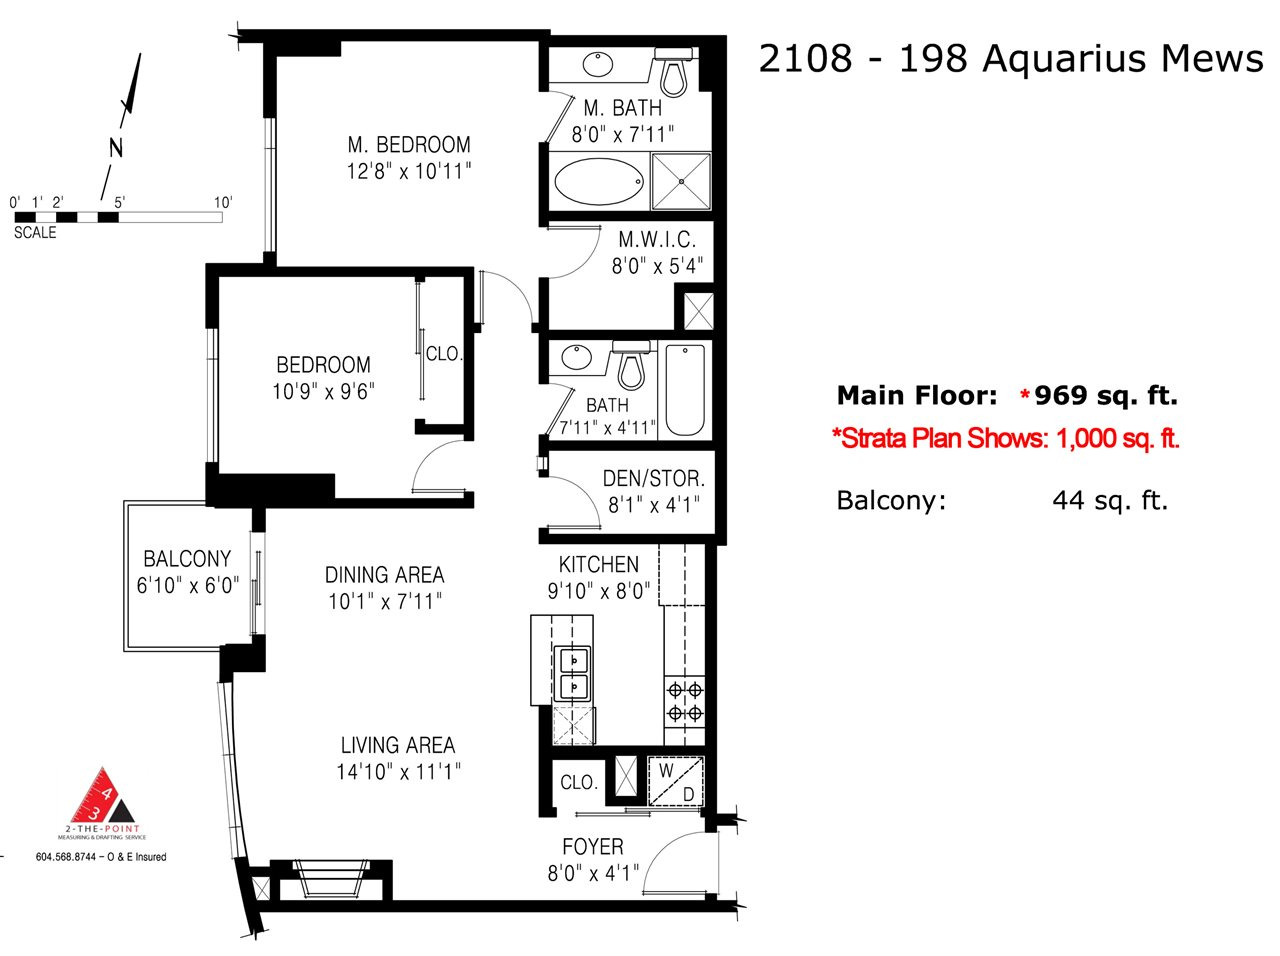 "Photo 20: 2108 198 AQUARIUS Mews in Vancouver: Yaletown Condo for sale in ""THE AQUARIUS"" (Vancouver West)  : MLS® # R2125703"